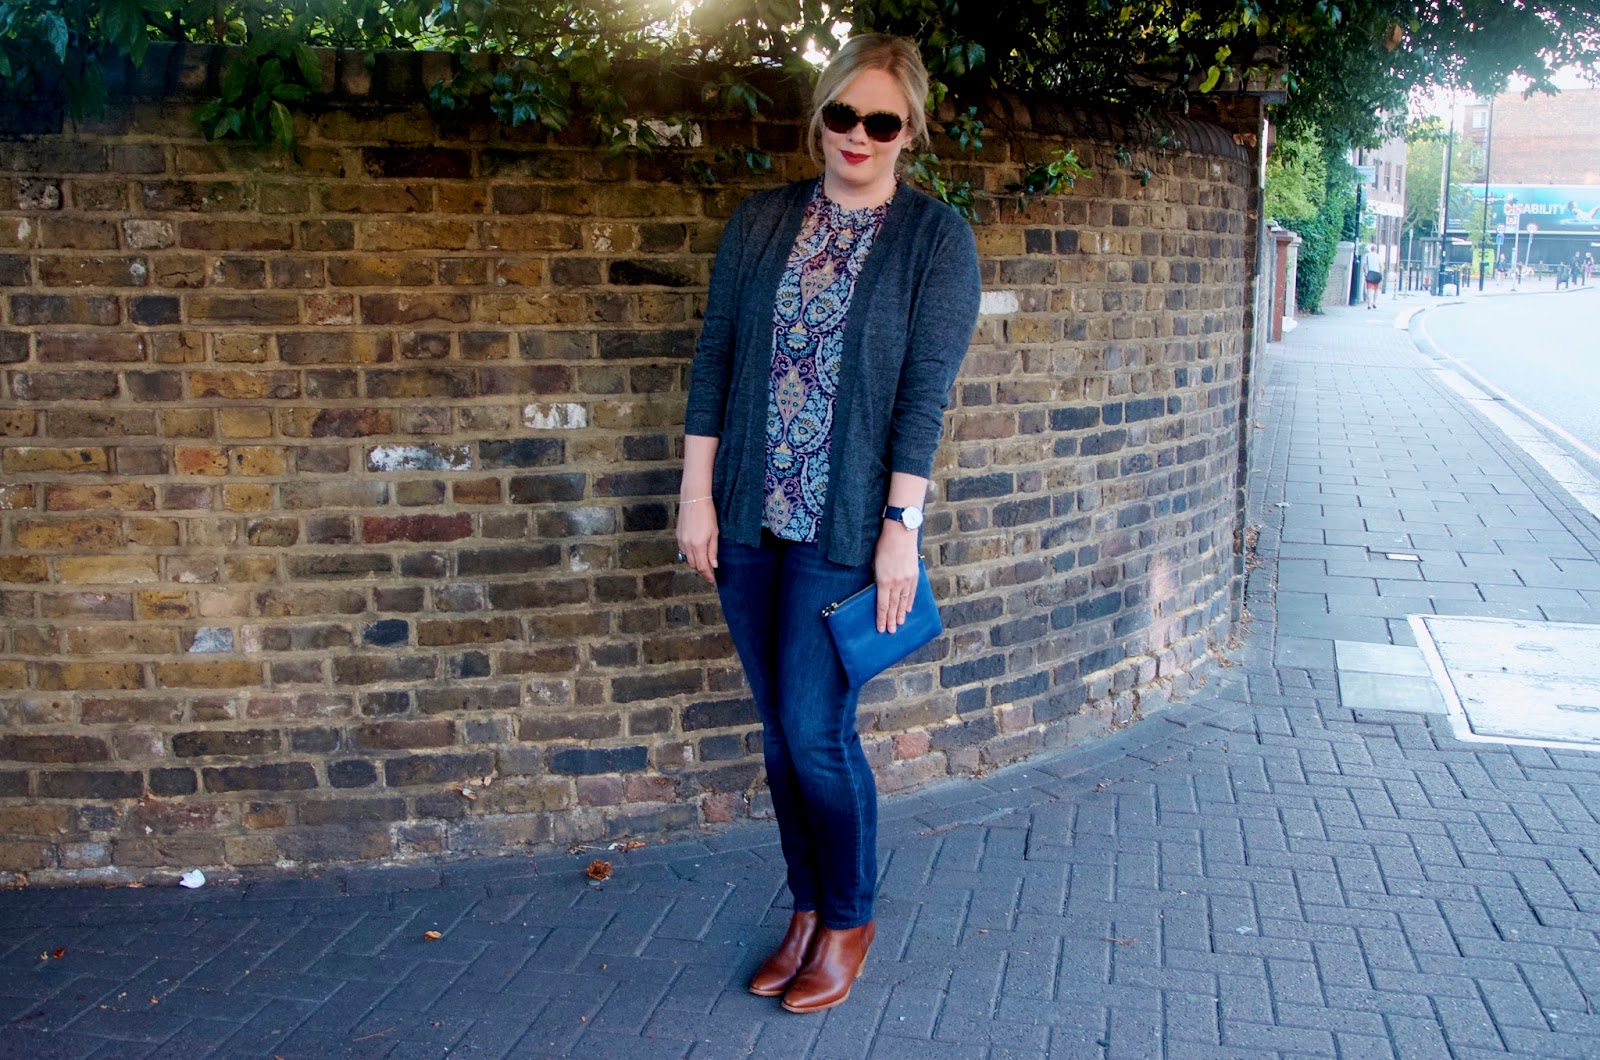 Brown boots, blue jeans, paisley, grey cardigan and sunglasses